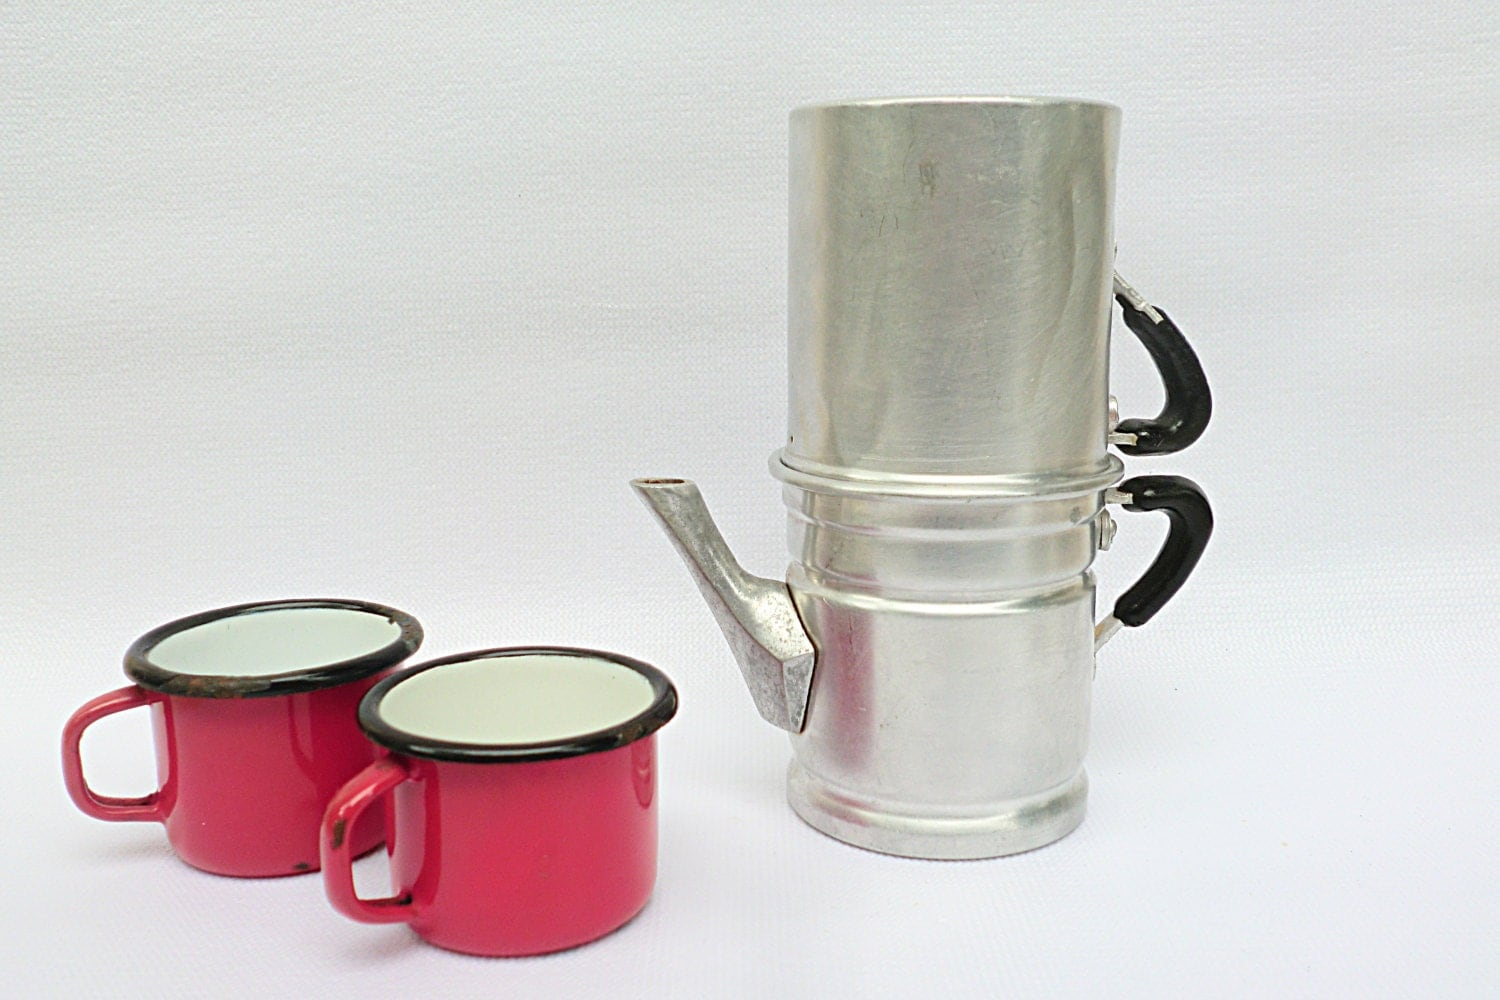 Vintage LUPA Neapolitan coffee pot made in Italy